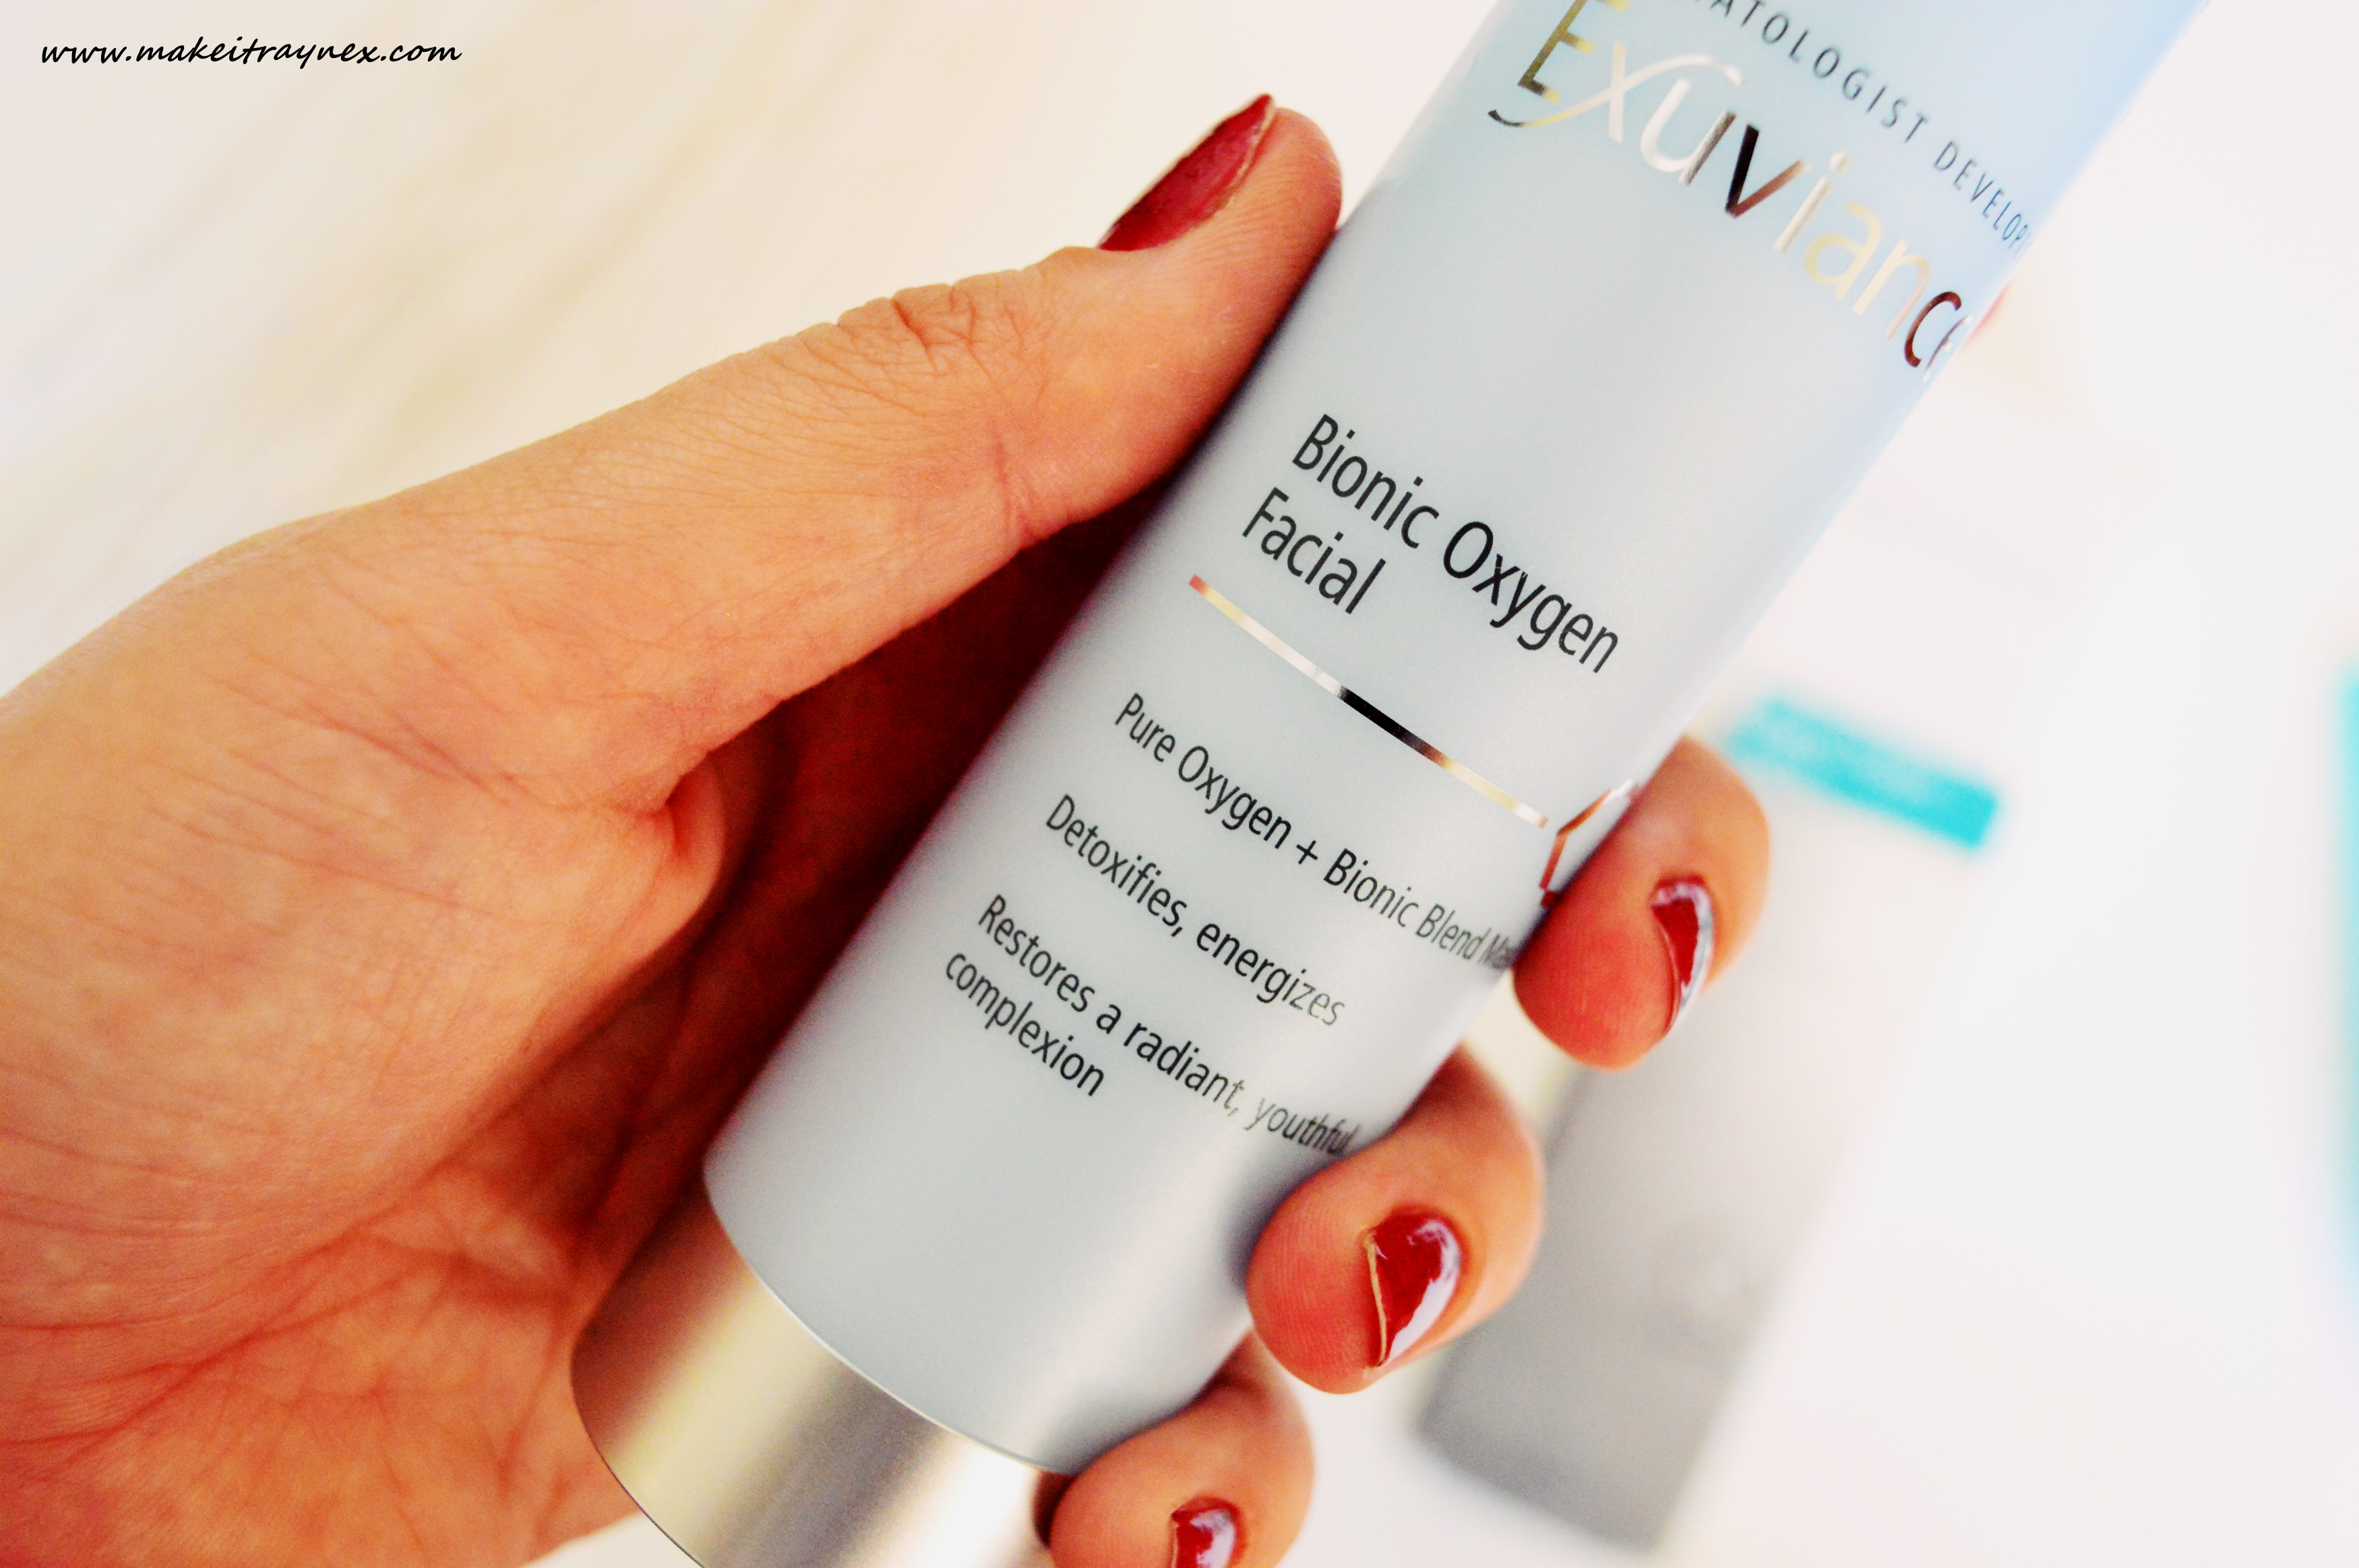 Toning Neck Cream and Bionic Oxygen Facial from Exuvience {LUXE REVIEW}